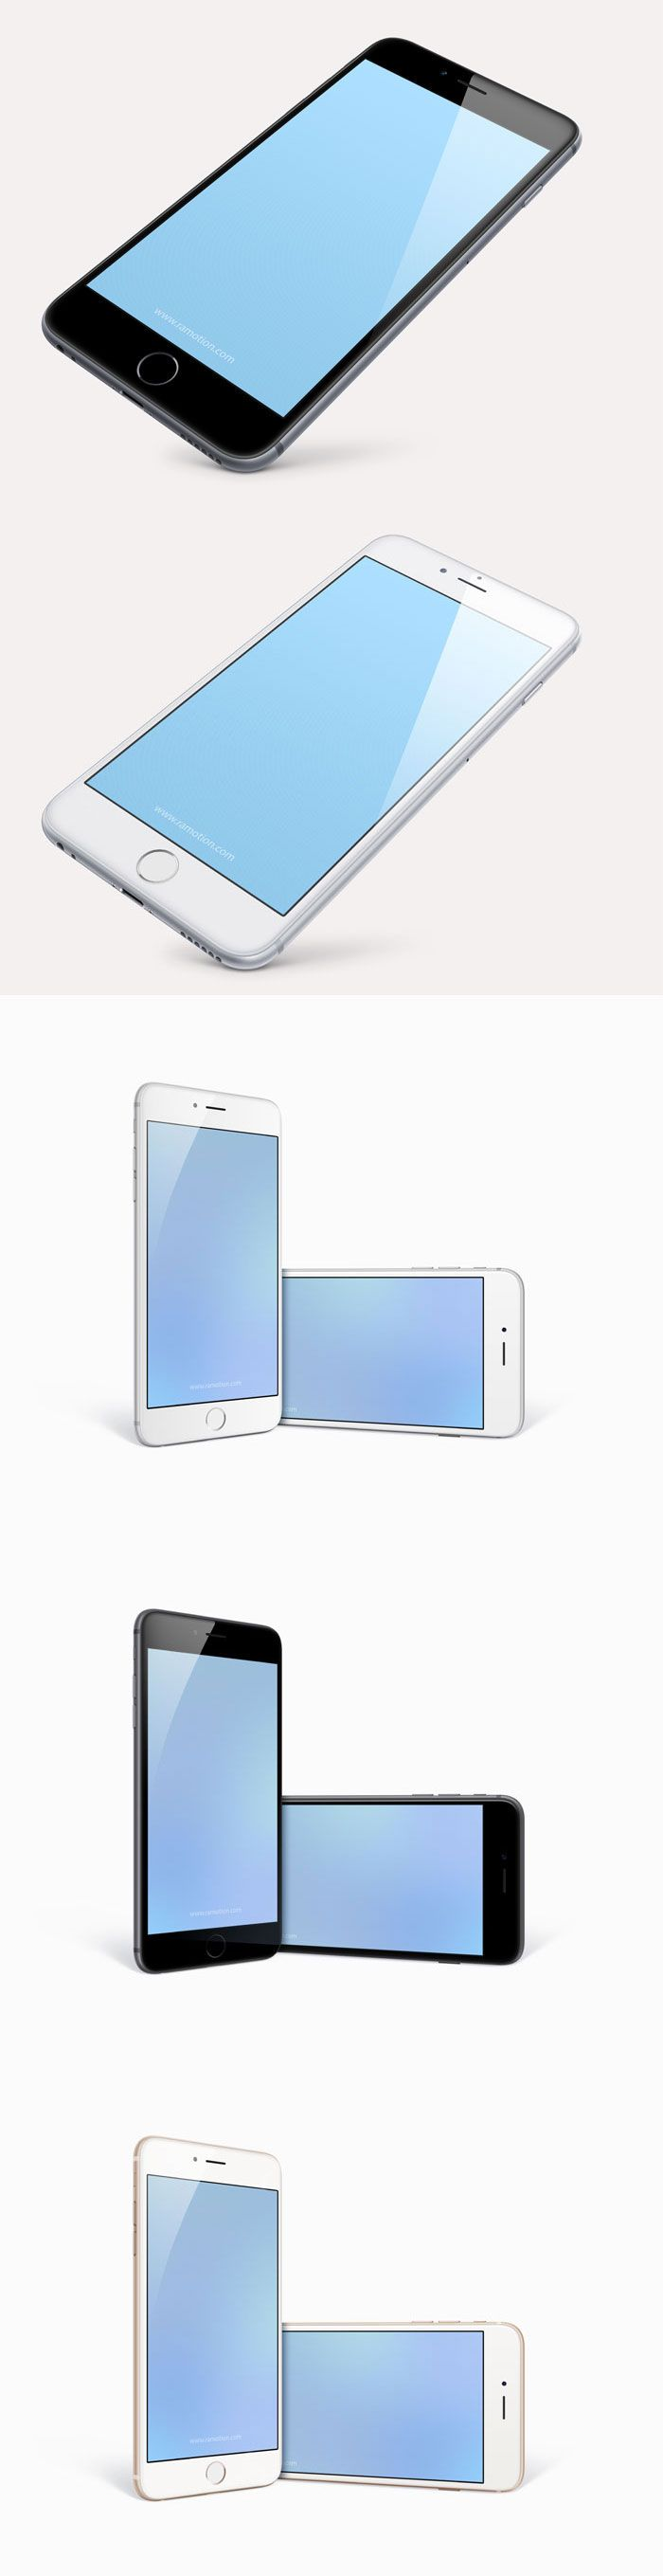 Free PSD: iPhone 6 Plus - 5,5 inch Templates by Ramotion